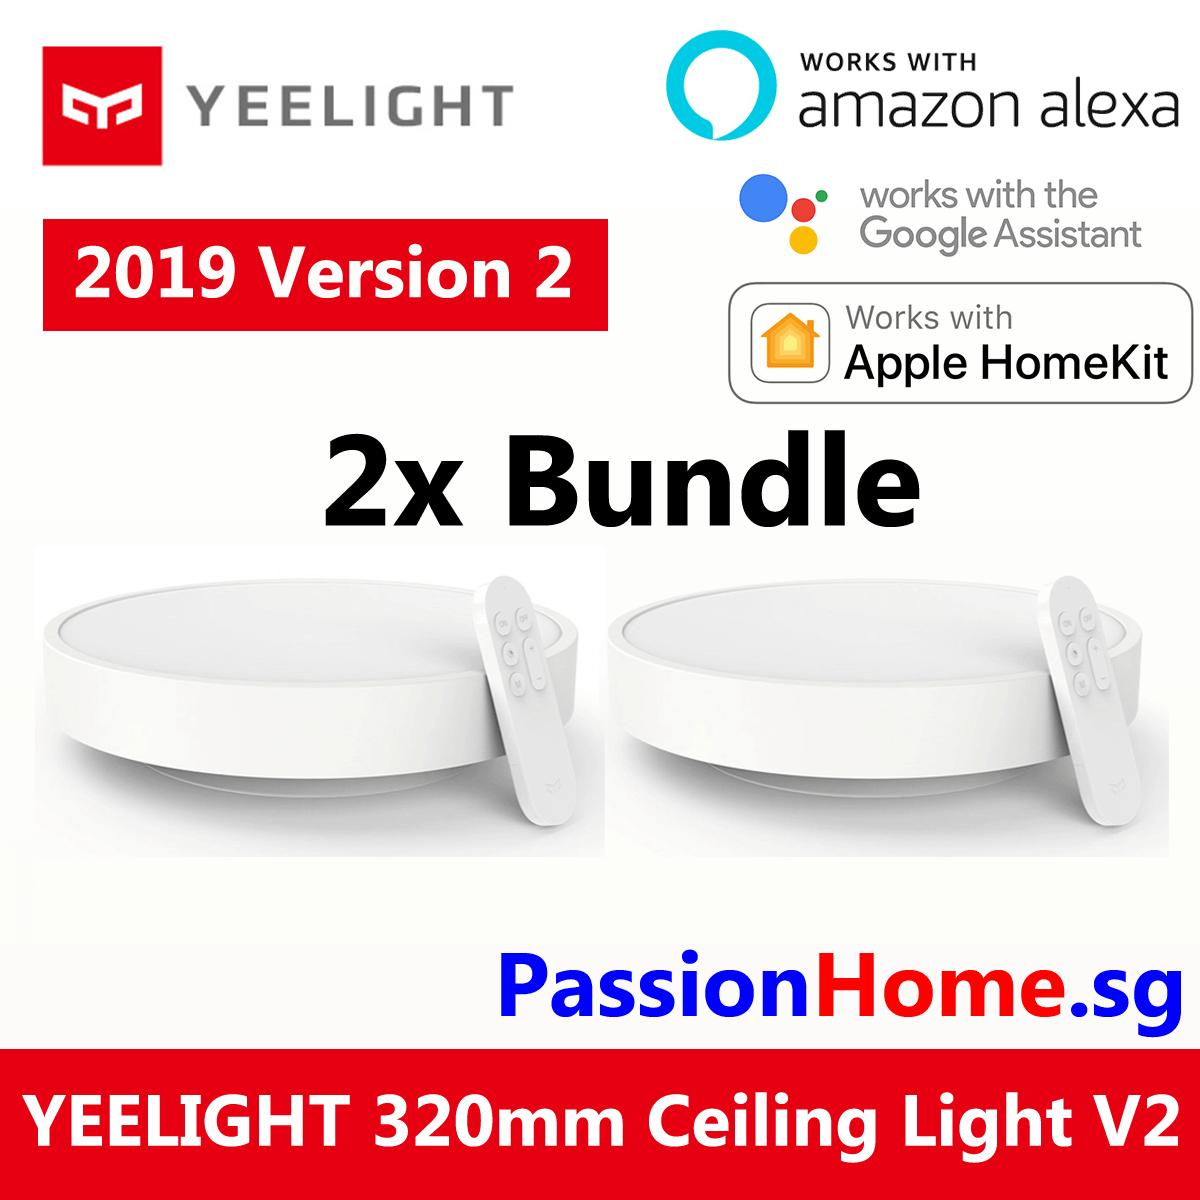 2x Bundle Yeelight Smart LED Ceiling Light Lamp (White) 320mm YLXD01YL 320 28W Wifi / BLE 1800 Lumens - Remote Control Included - Xiaomi Mijia Smart Home Automation - (Works with Google Home Assistant Amazon Alexa Echo) - Mi Home App - Passion Home